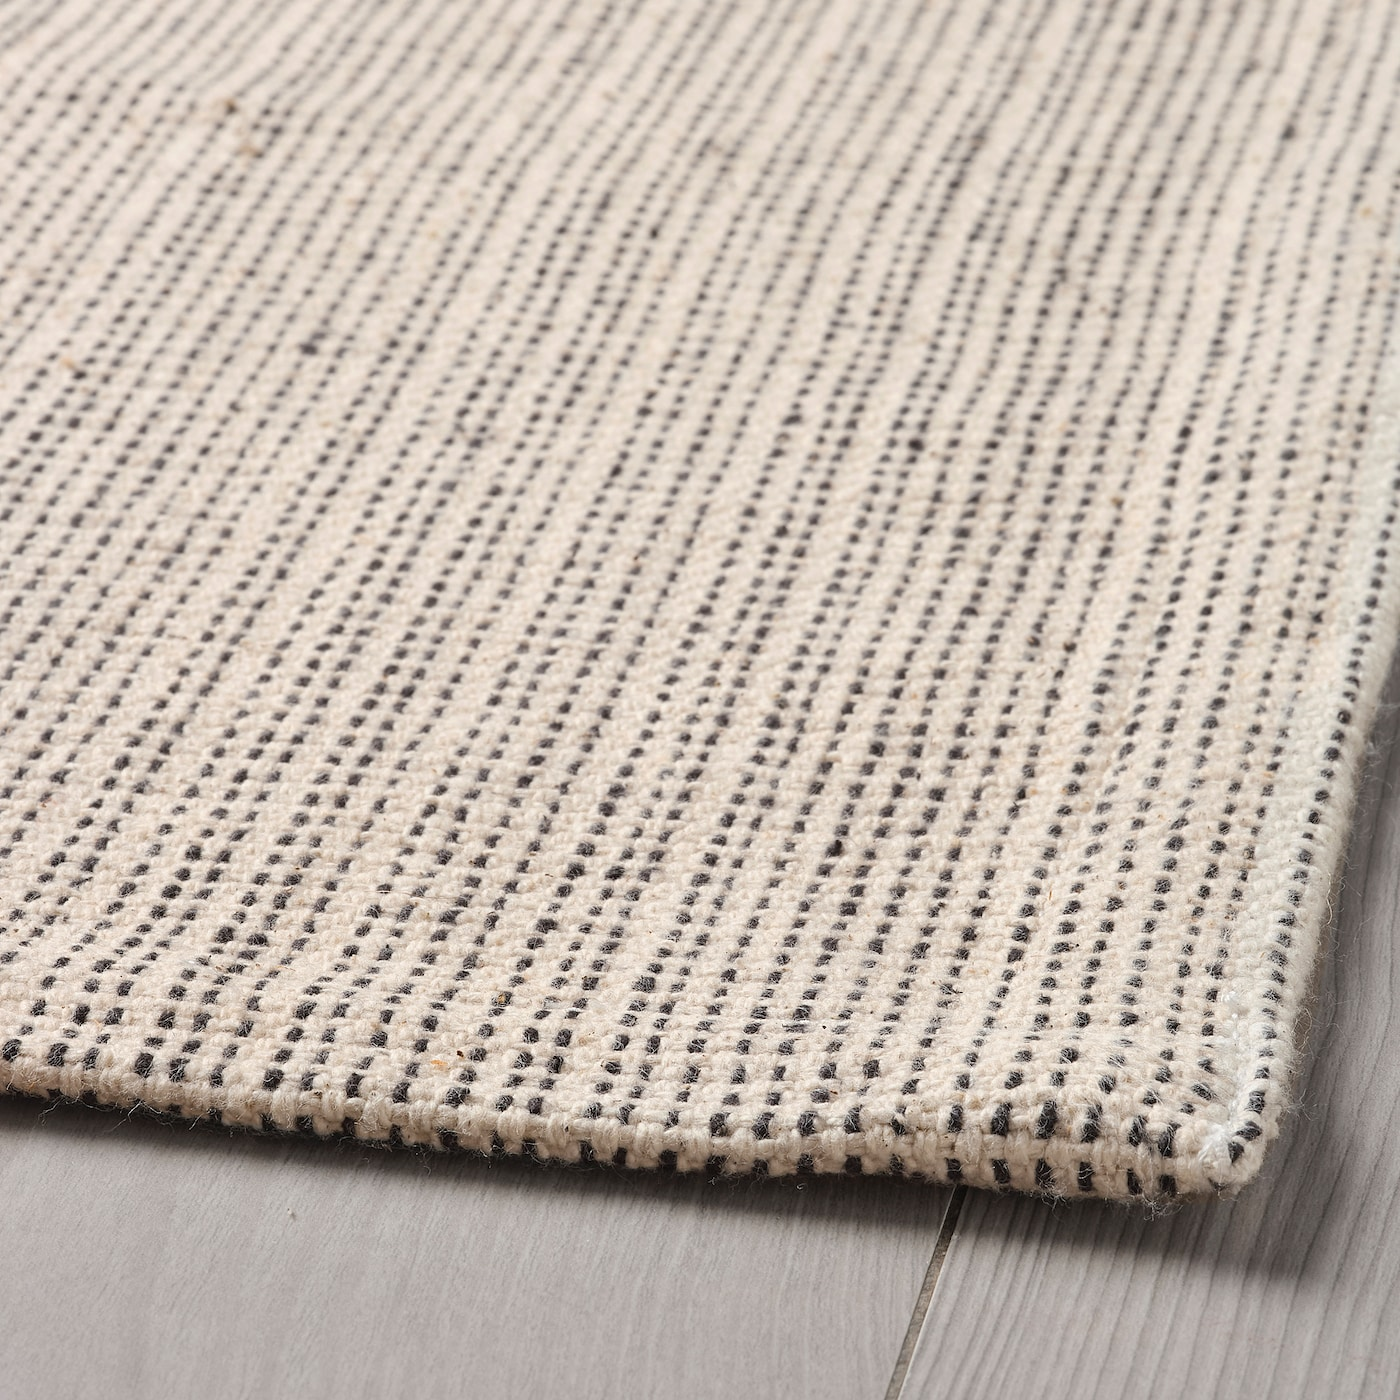 TIPHEDE Rug, flatwoven - natural/off-white 3x3 cm